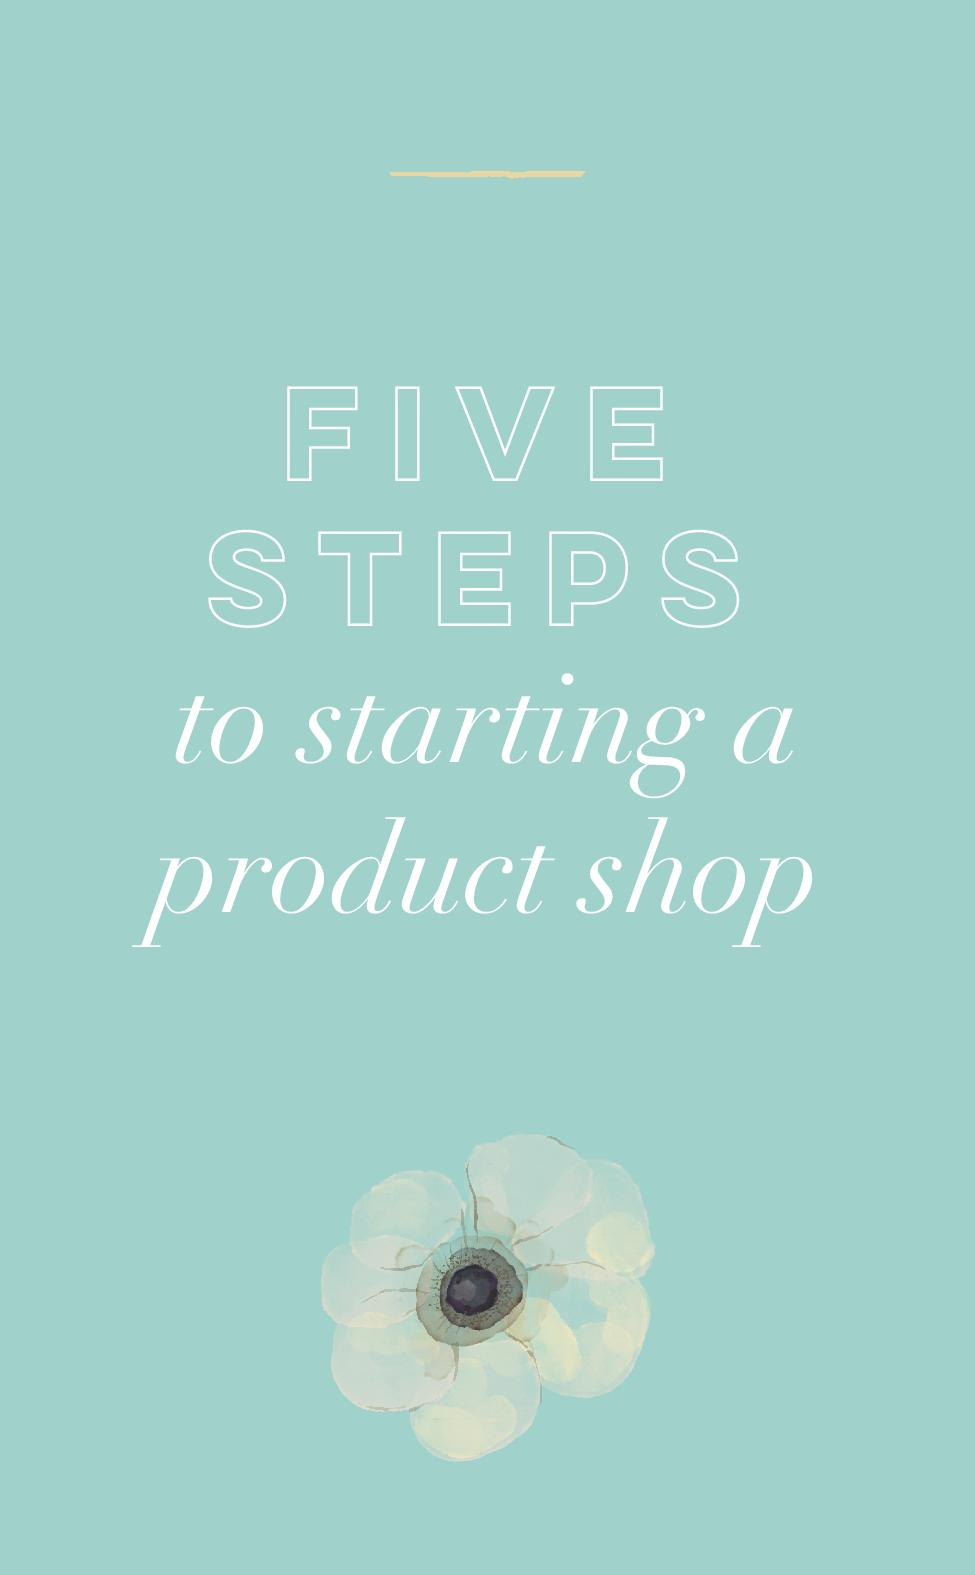 Five steps to starting a product shop blog.jpg